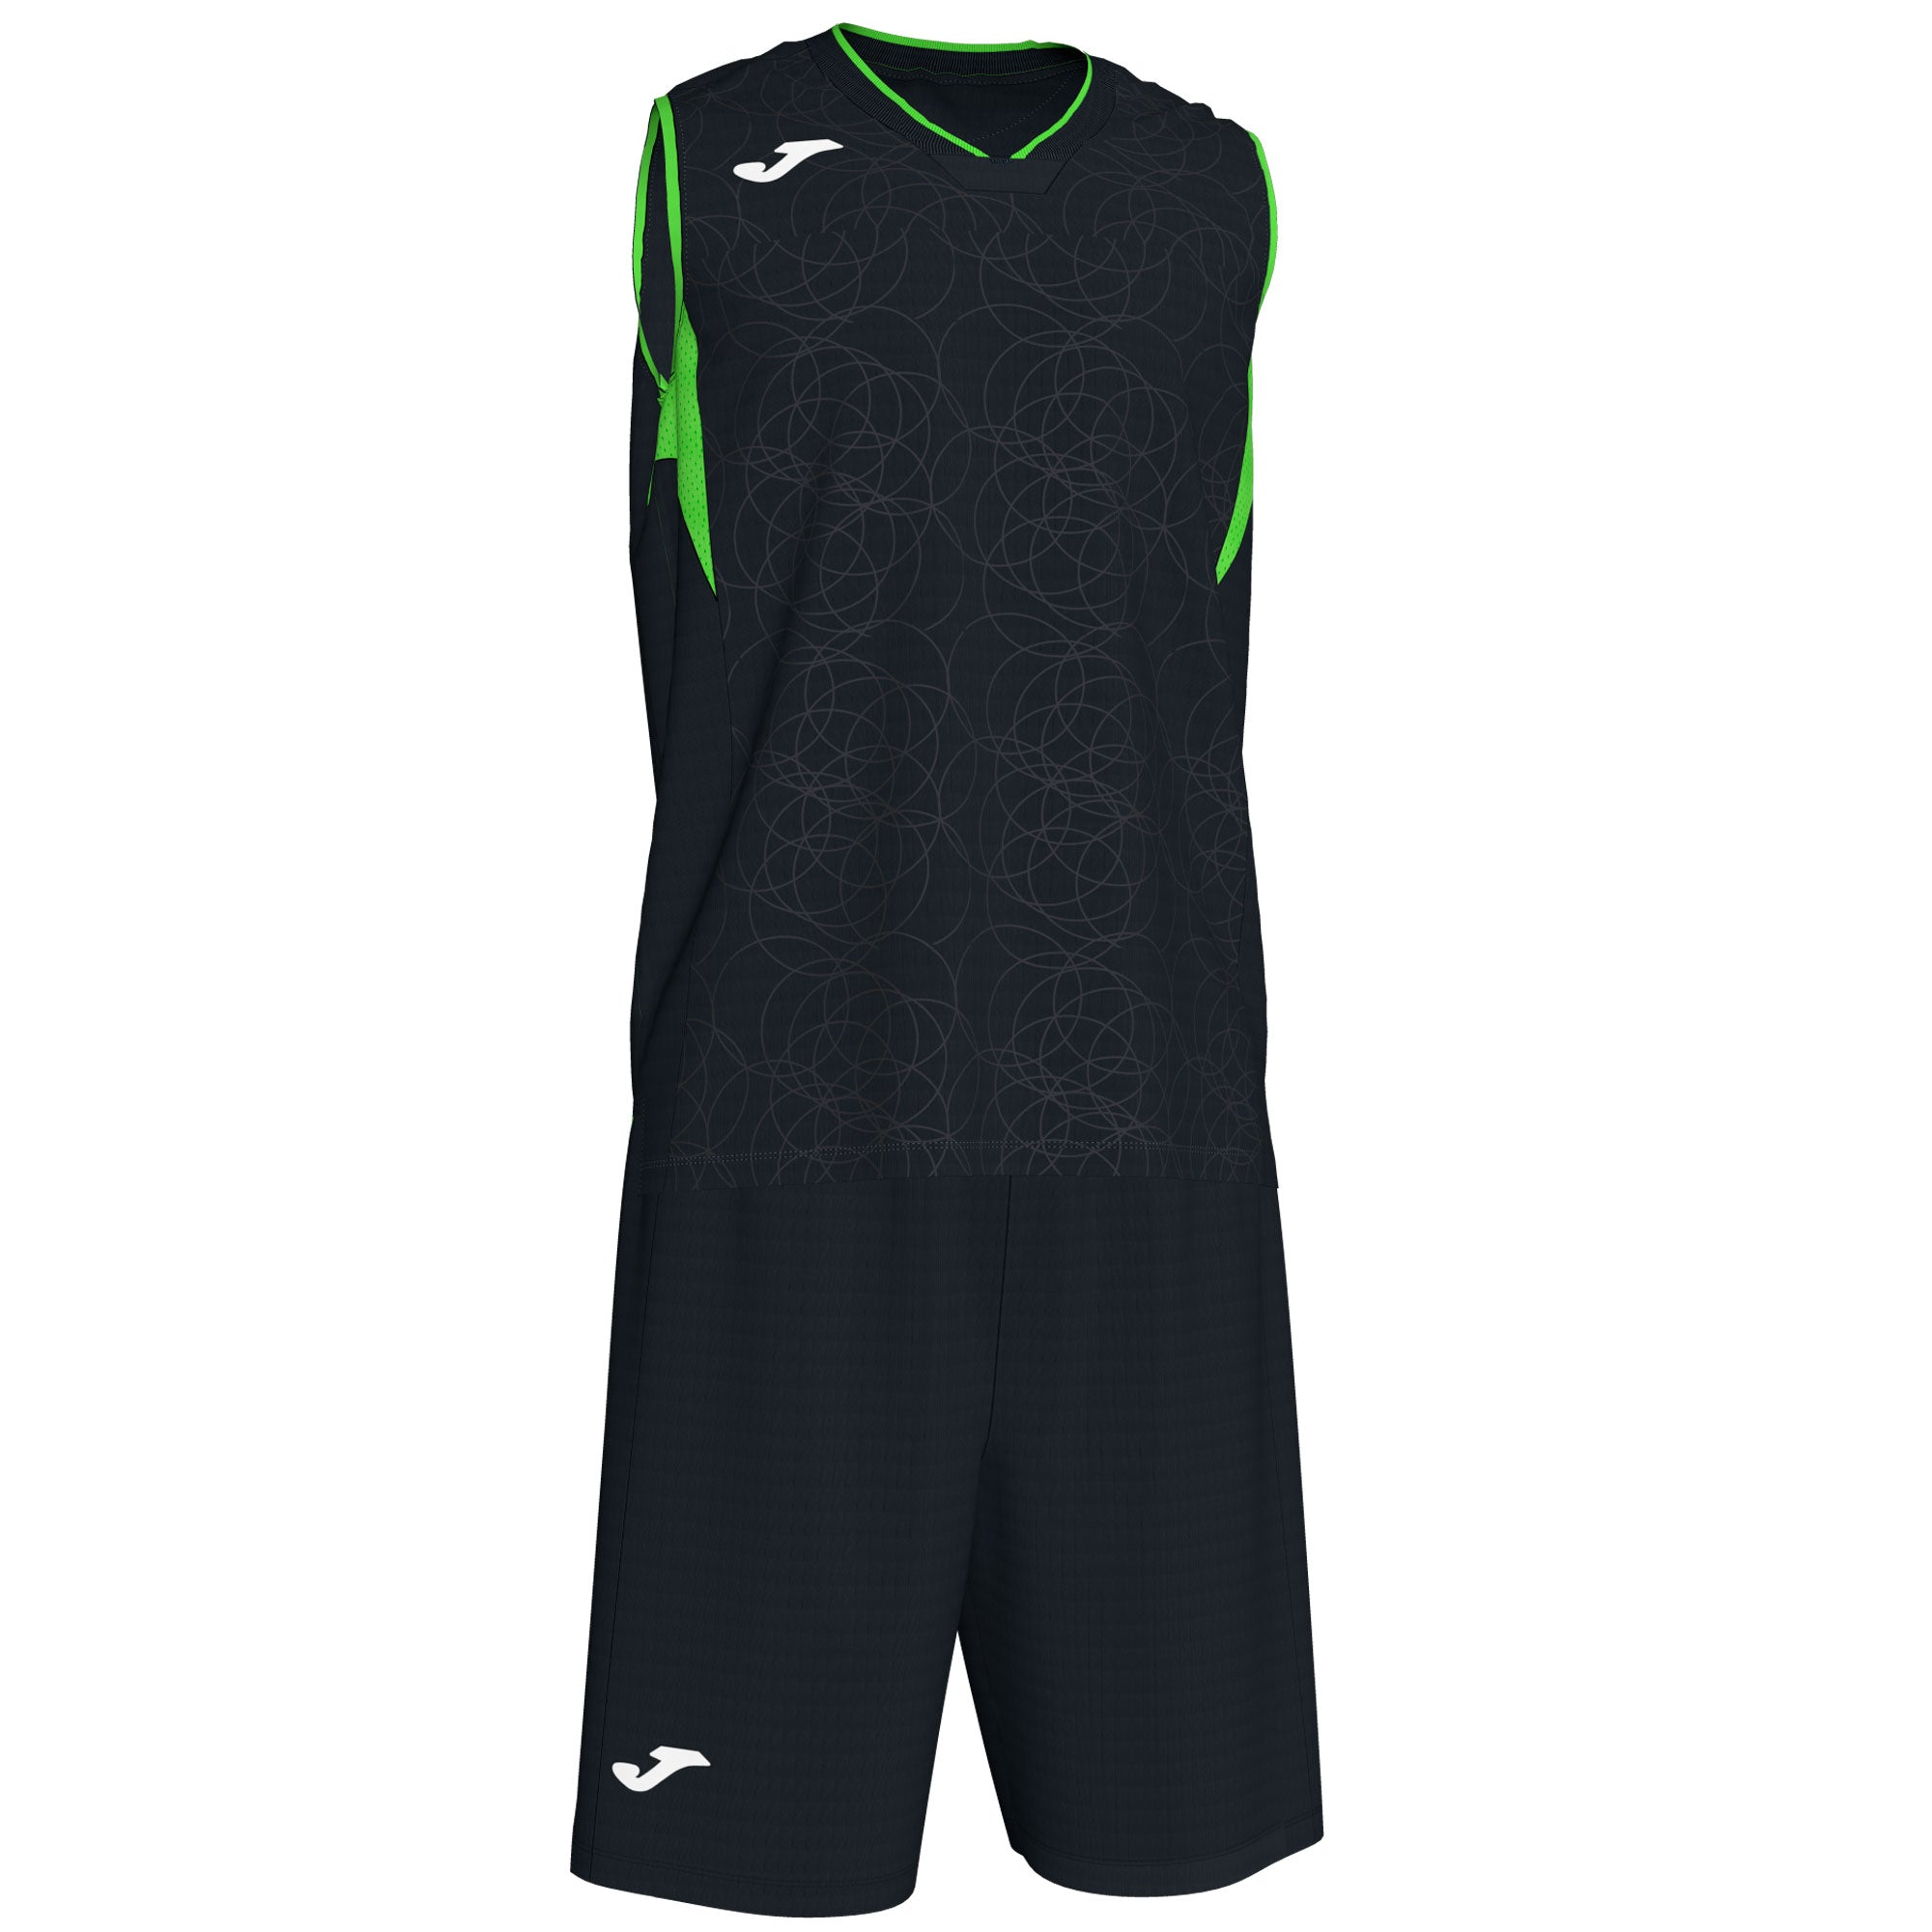 Teamwear - Joma Campus Kit - Black/Flour Green - JO-101373-117